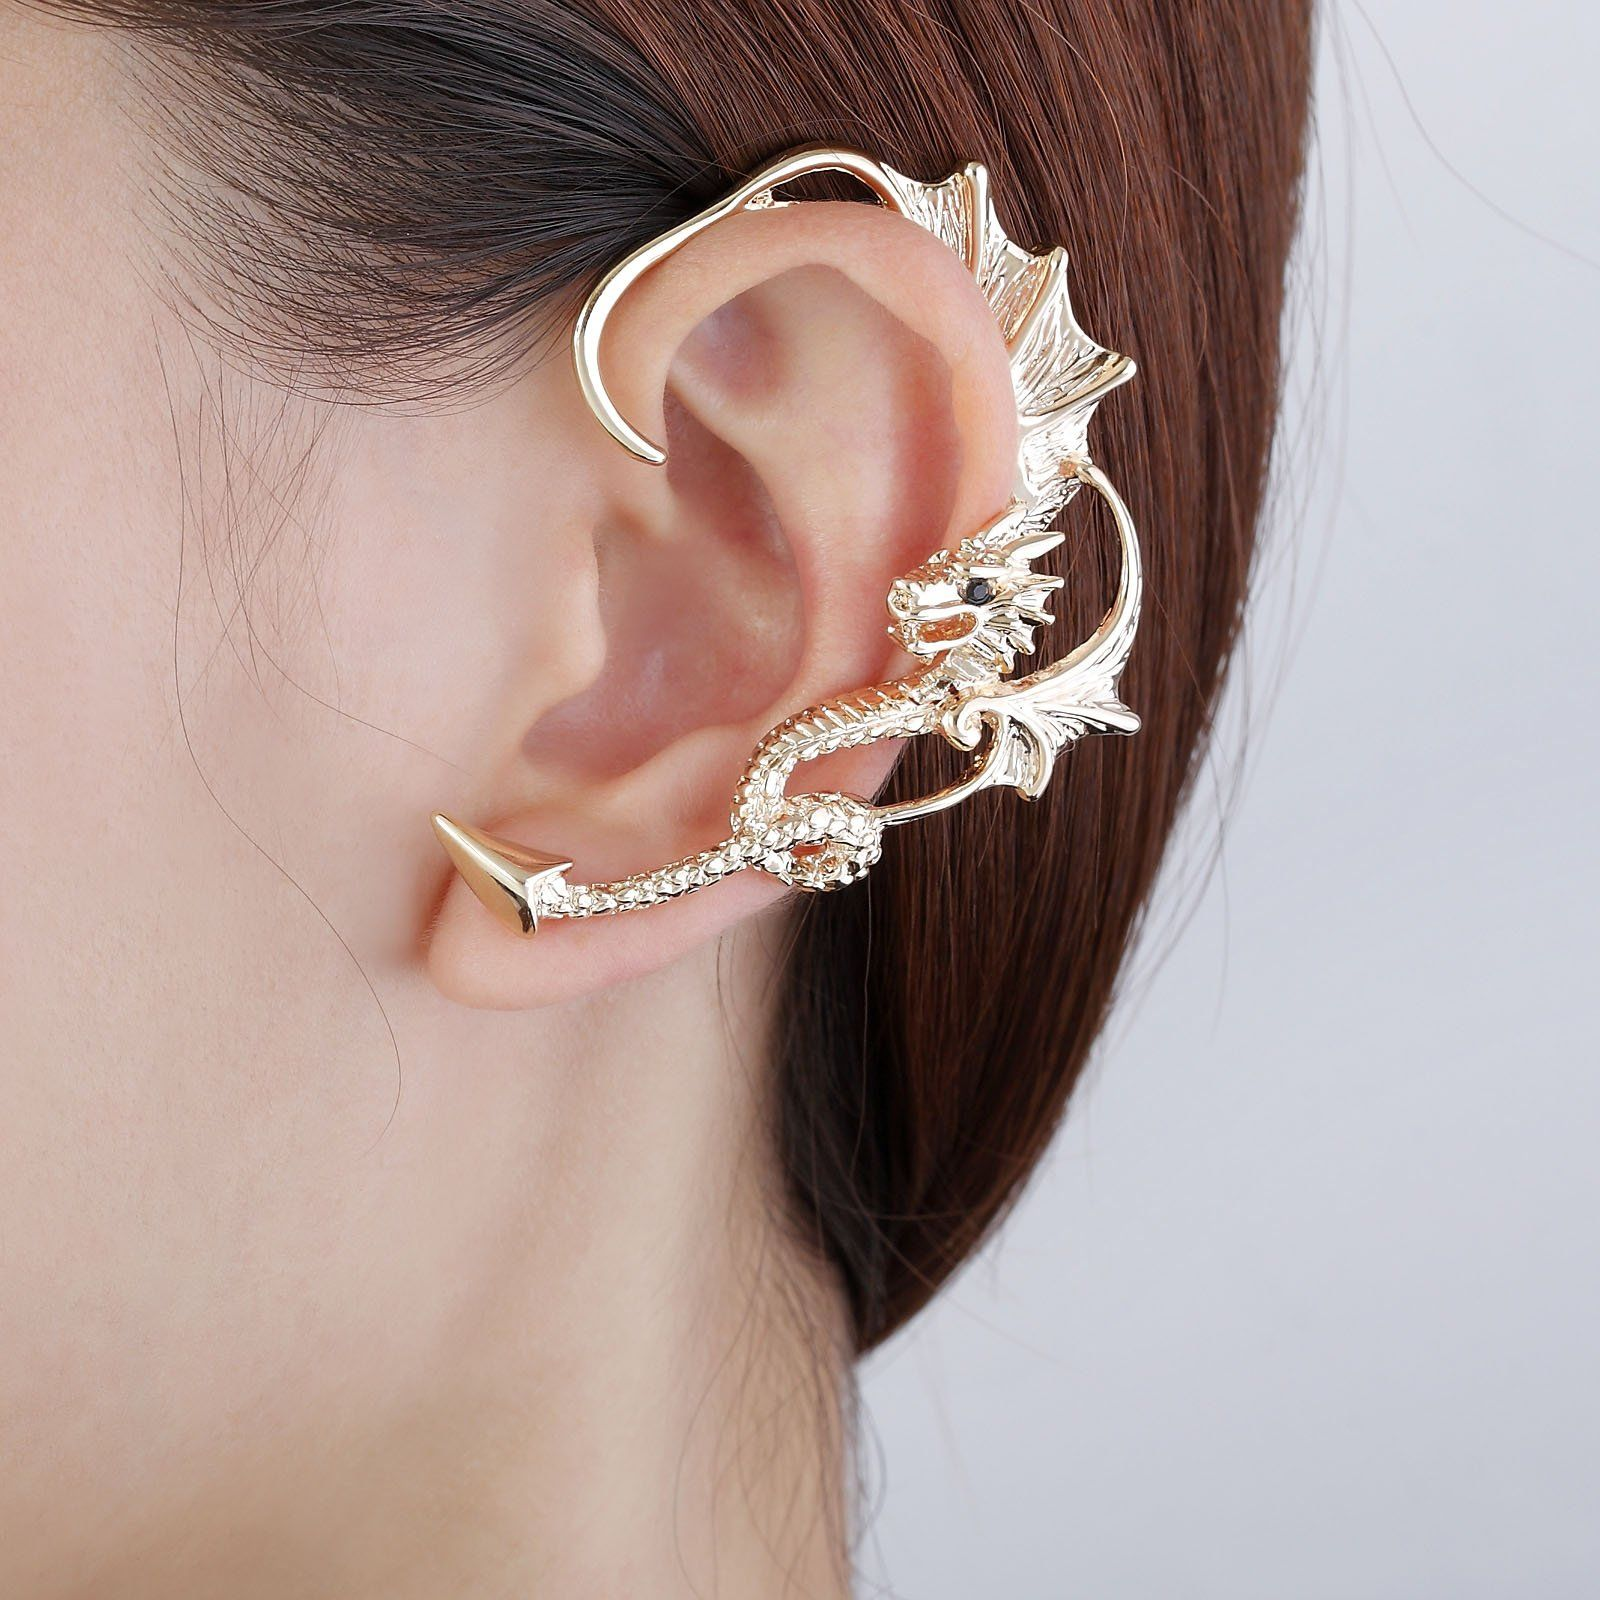 product wrap image earring earrings single snake cuff ear cheekydoodah unit products